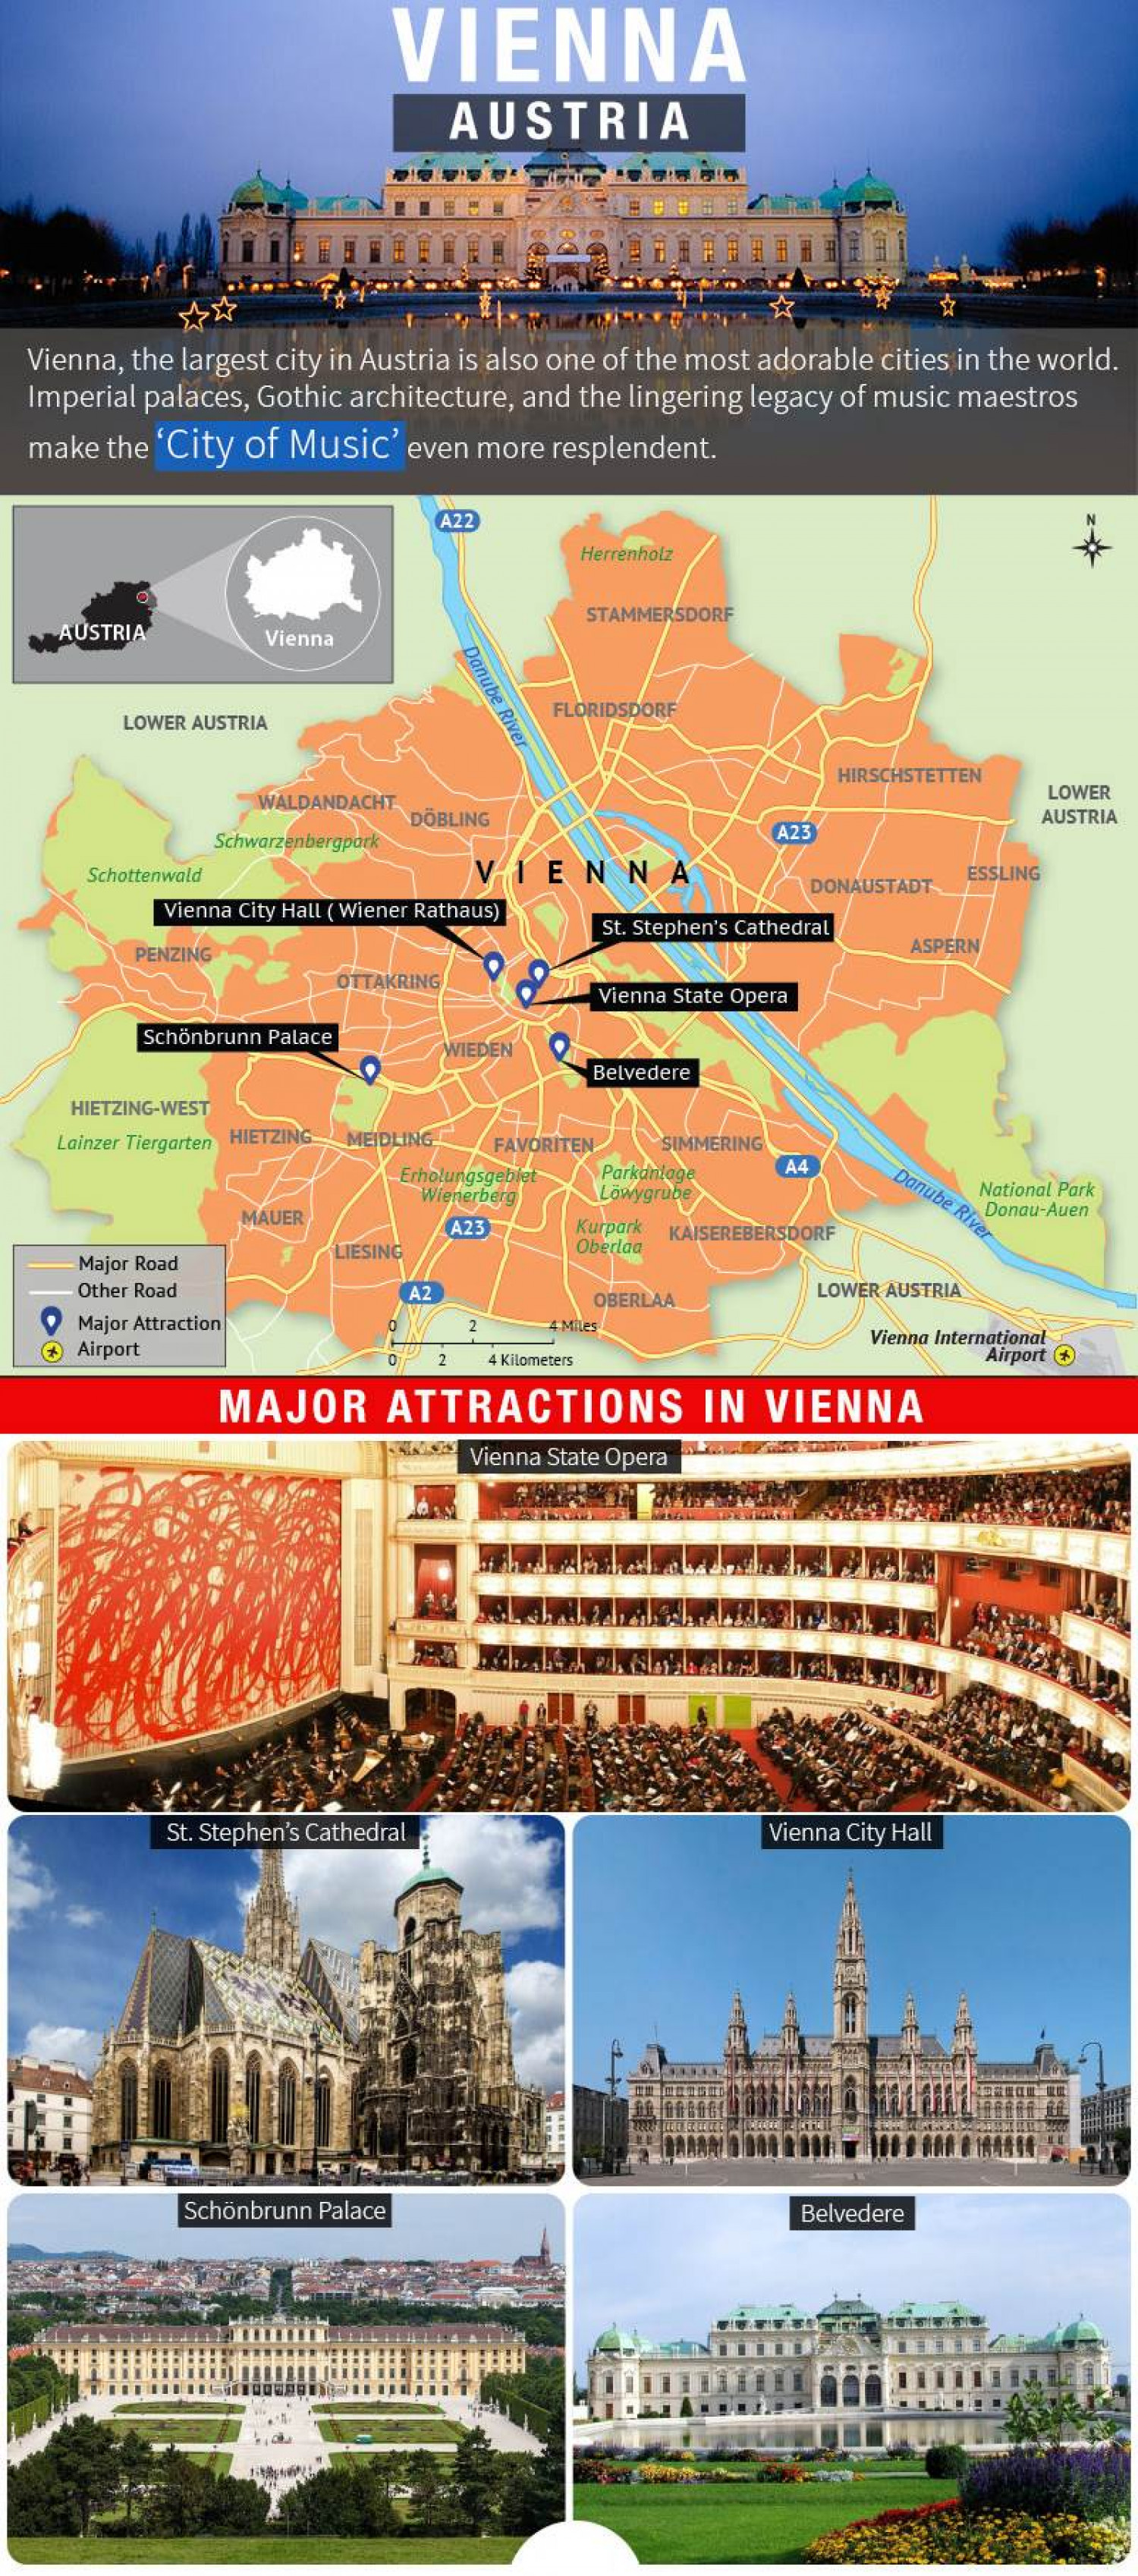 TOP 5 sights in Vienna Infographic